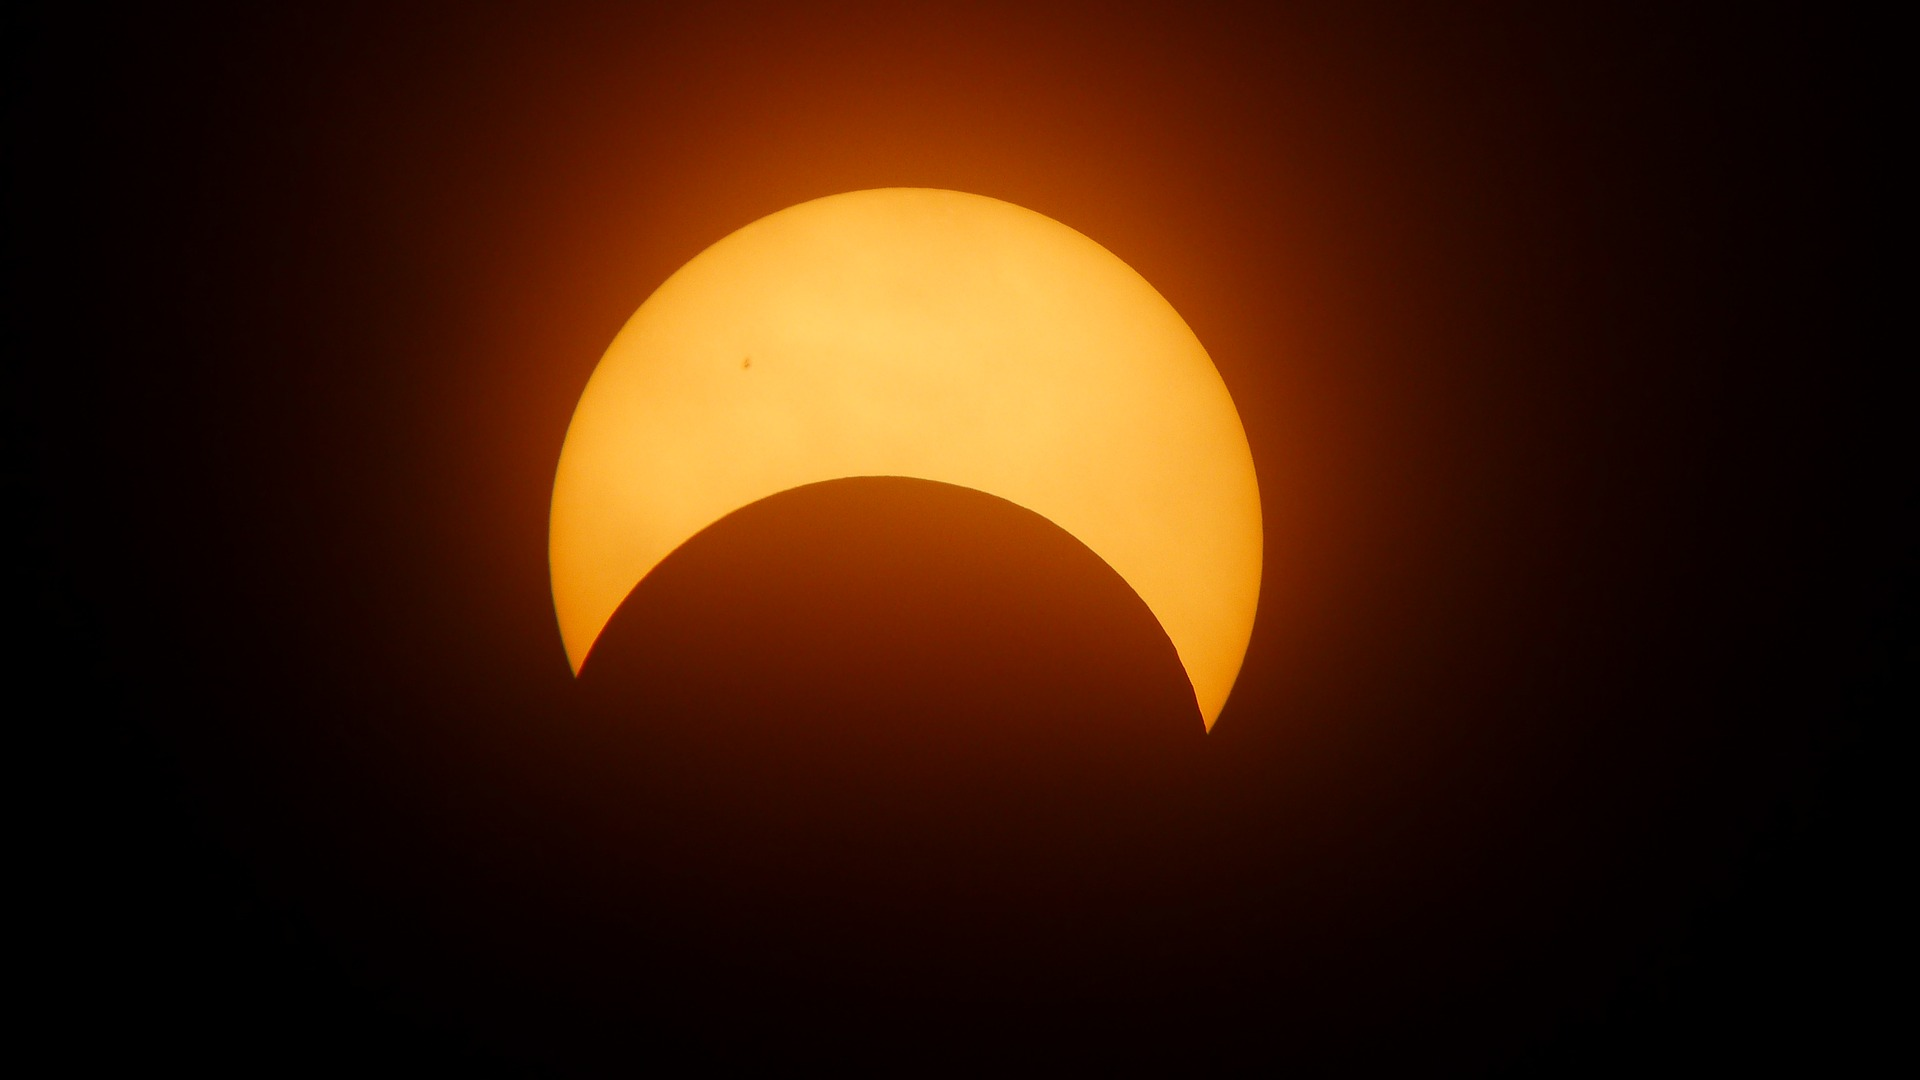 solar eclipse 21 august 2017 cree literacy network. Black Bedroom Furniture Sets. Home Design Ideas